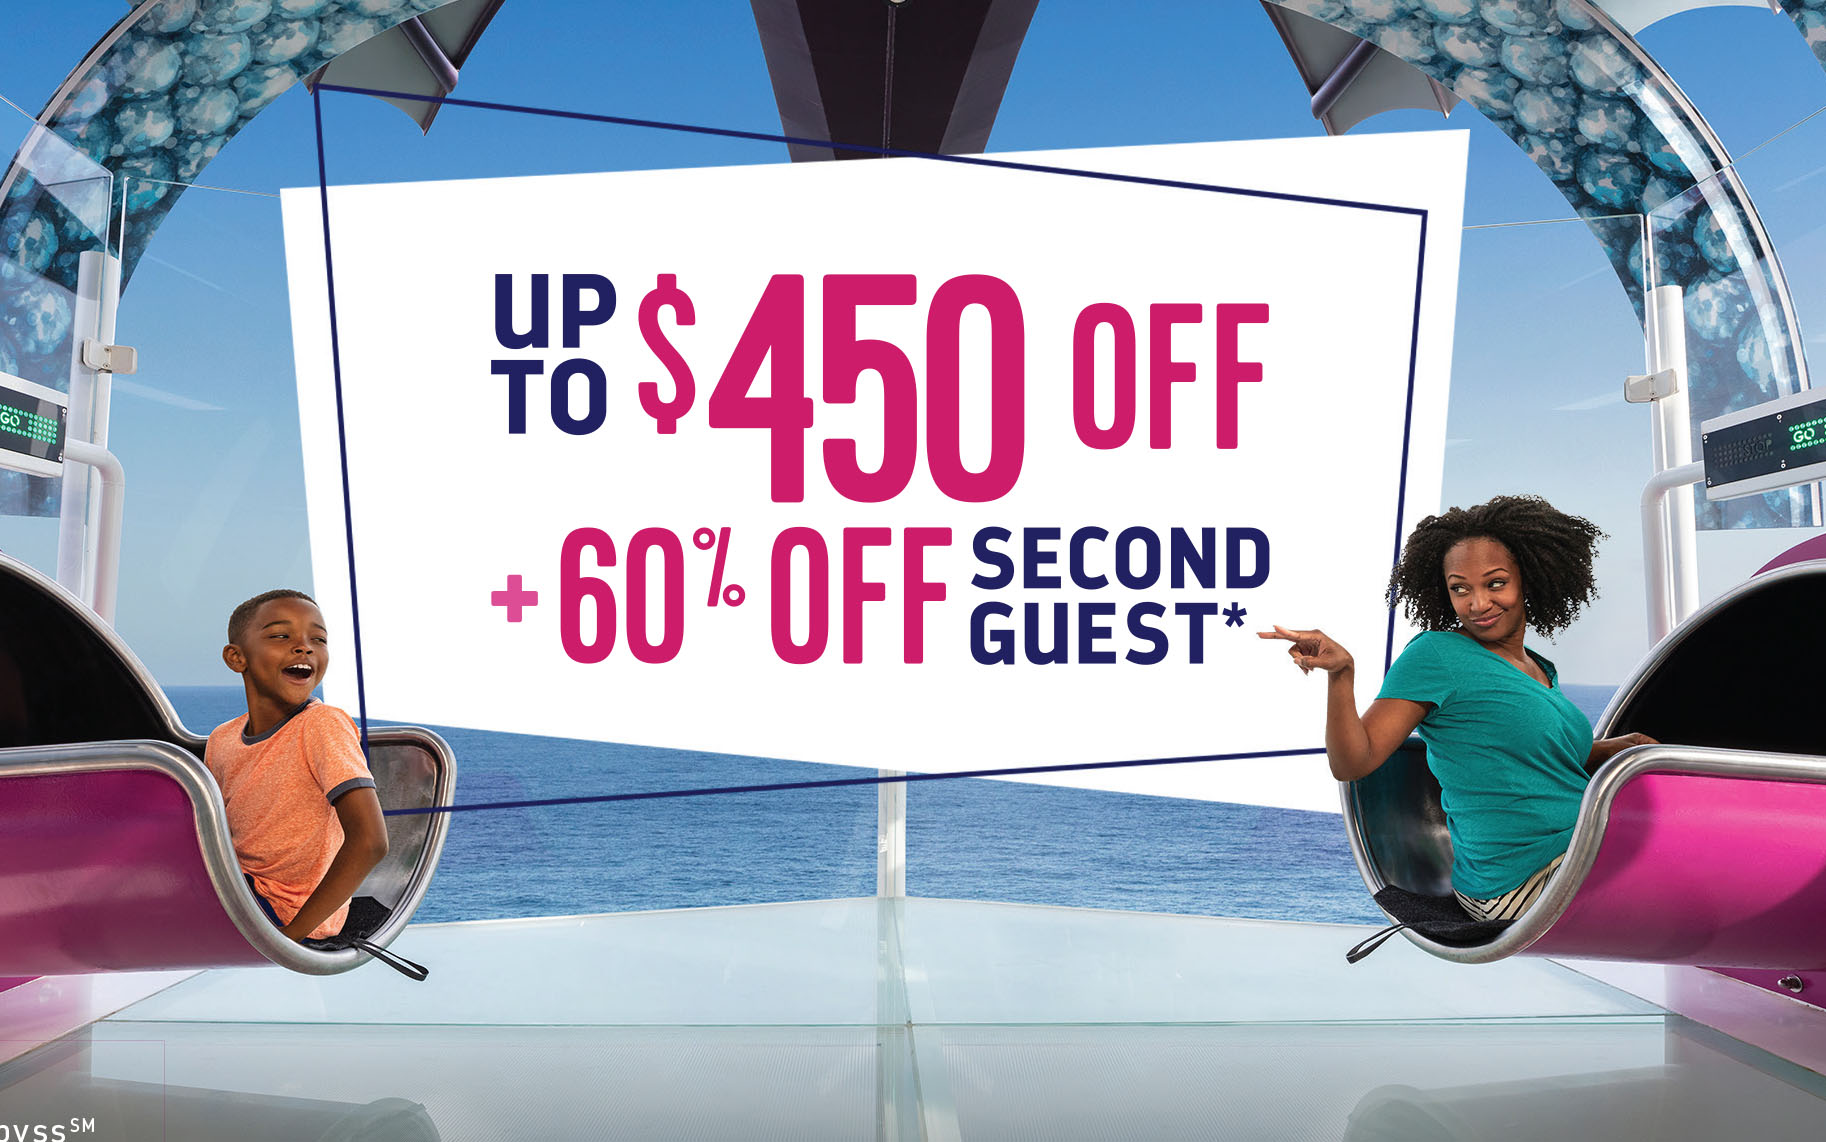 Royal Caribbean - 60% OFF Second Guest + Up to $450 OFF